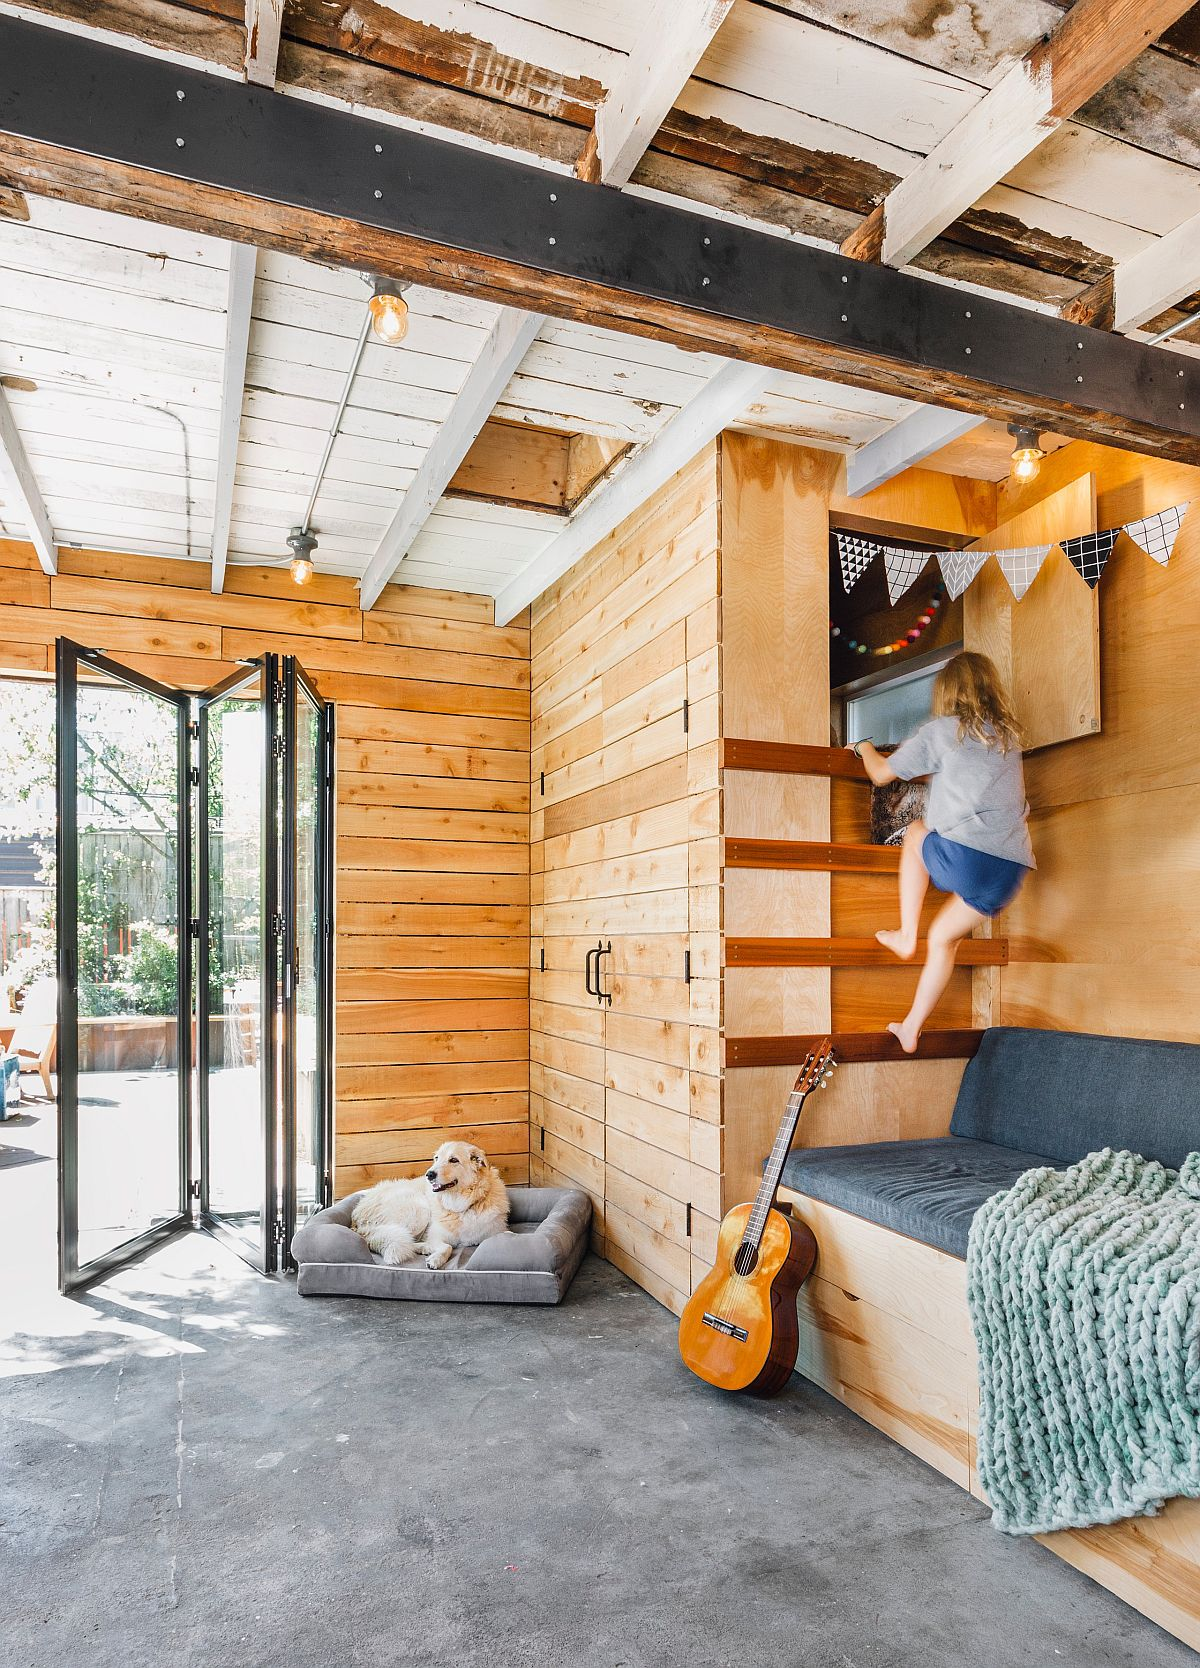 Farmhouse style kids' room with space-conscious bunk beds and concrete floor